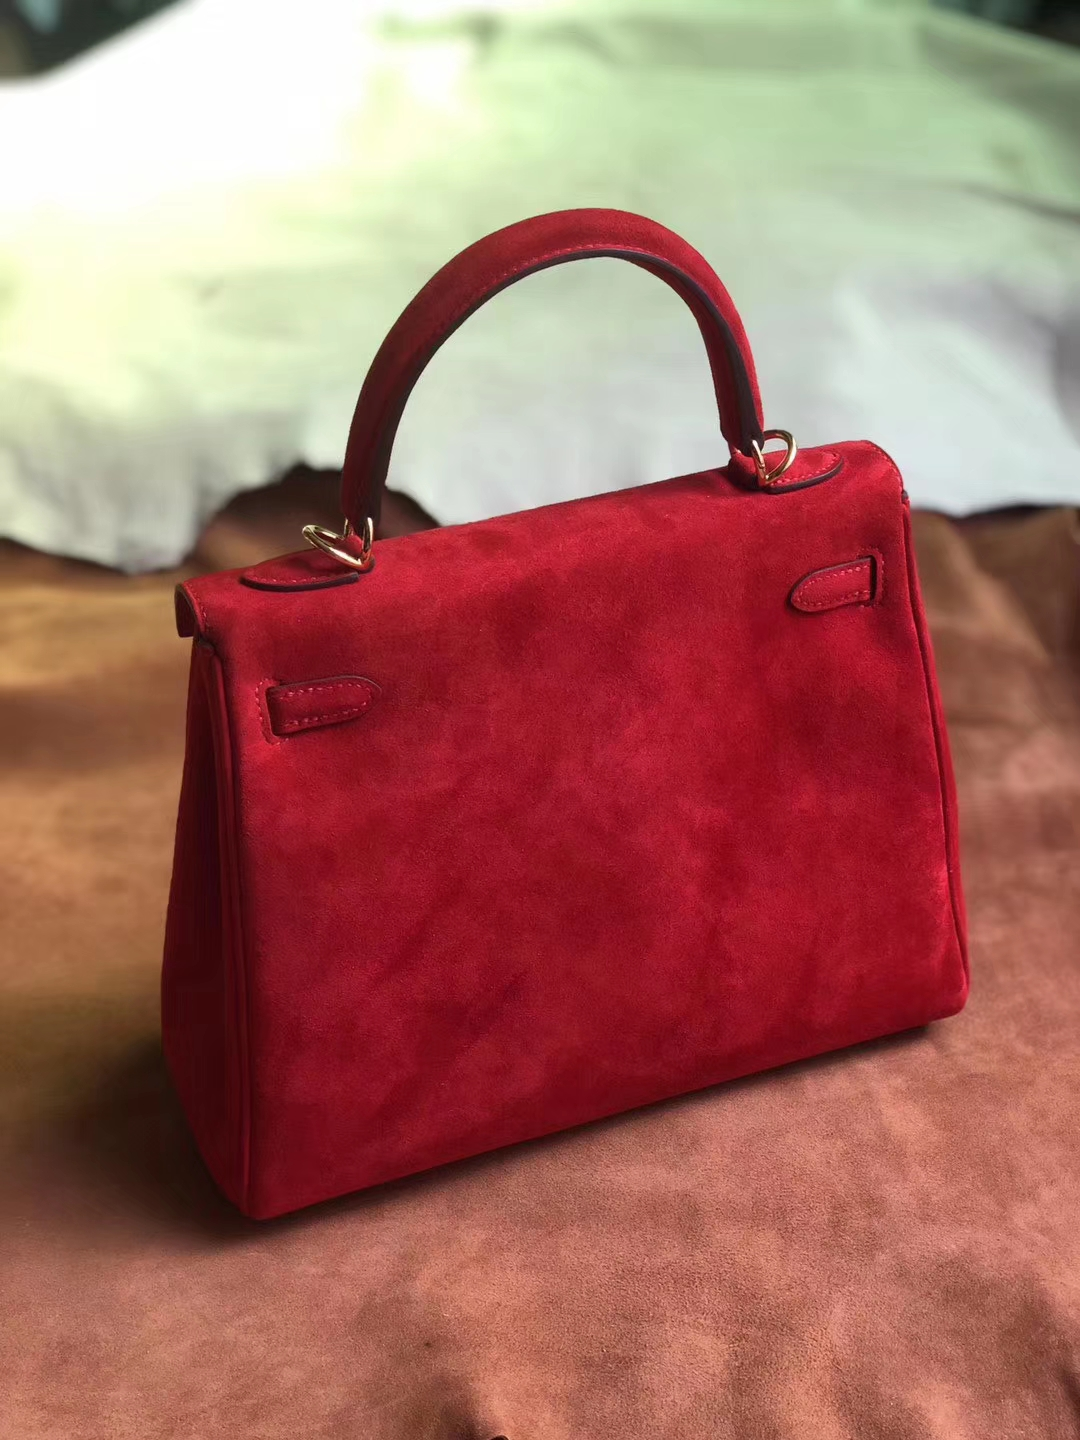 Discount Hermes Q5 Rouge Casaque Suede Leather Kelly Bag25CM Gold Hardware